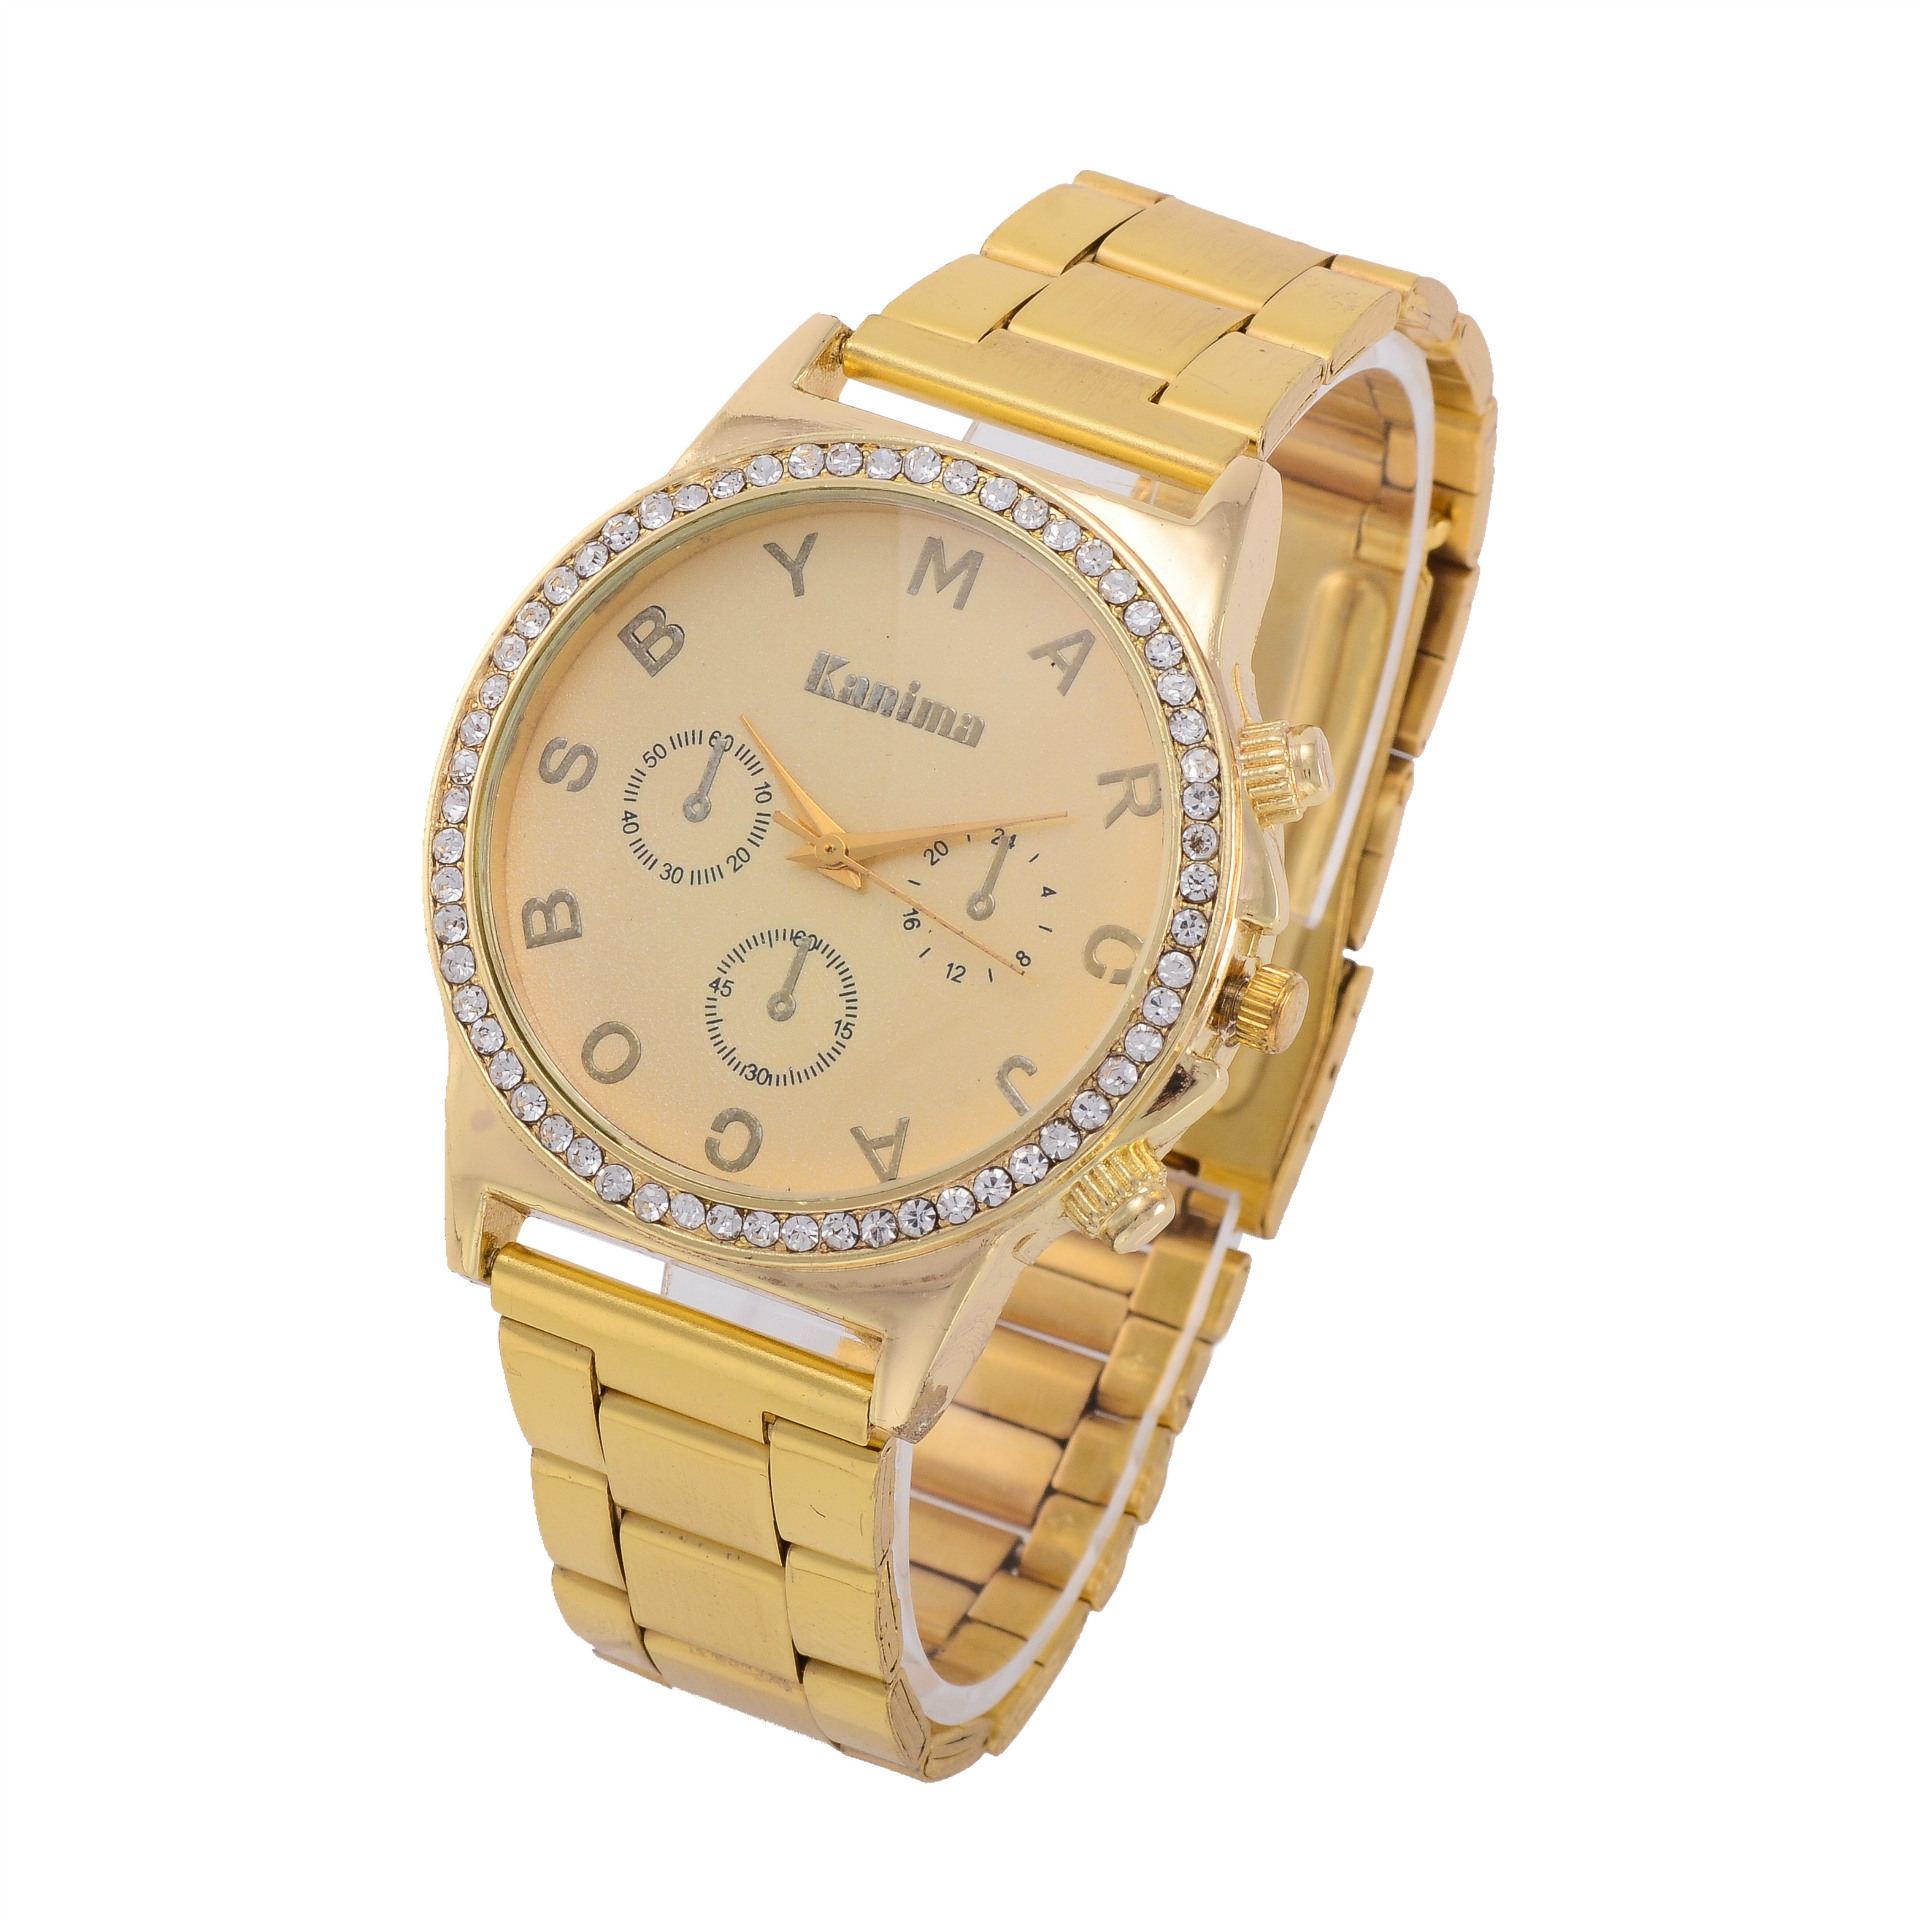 3d7b48d13c63e5 Cheap Fake Diamond Watches Men, find Fake Diamond Watches Men deals on line  at Alibaba.com